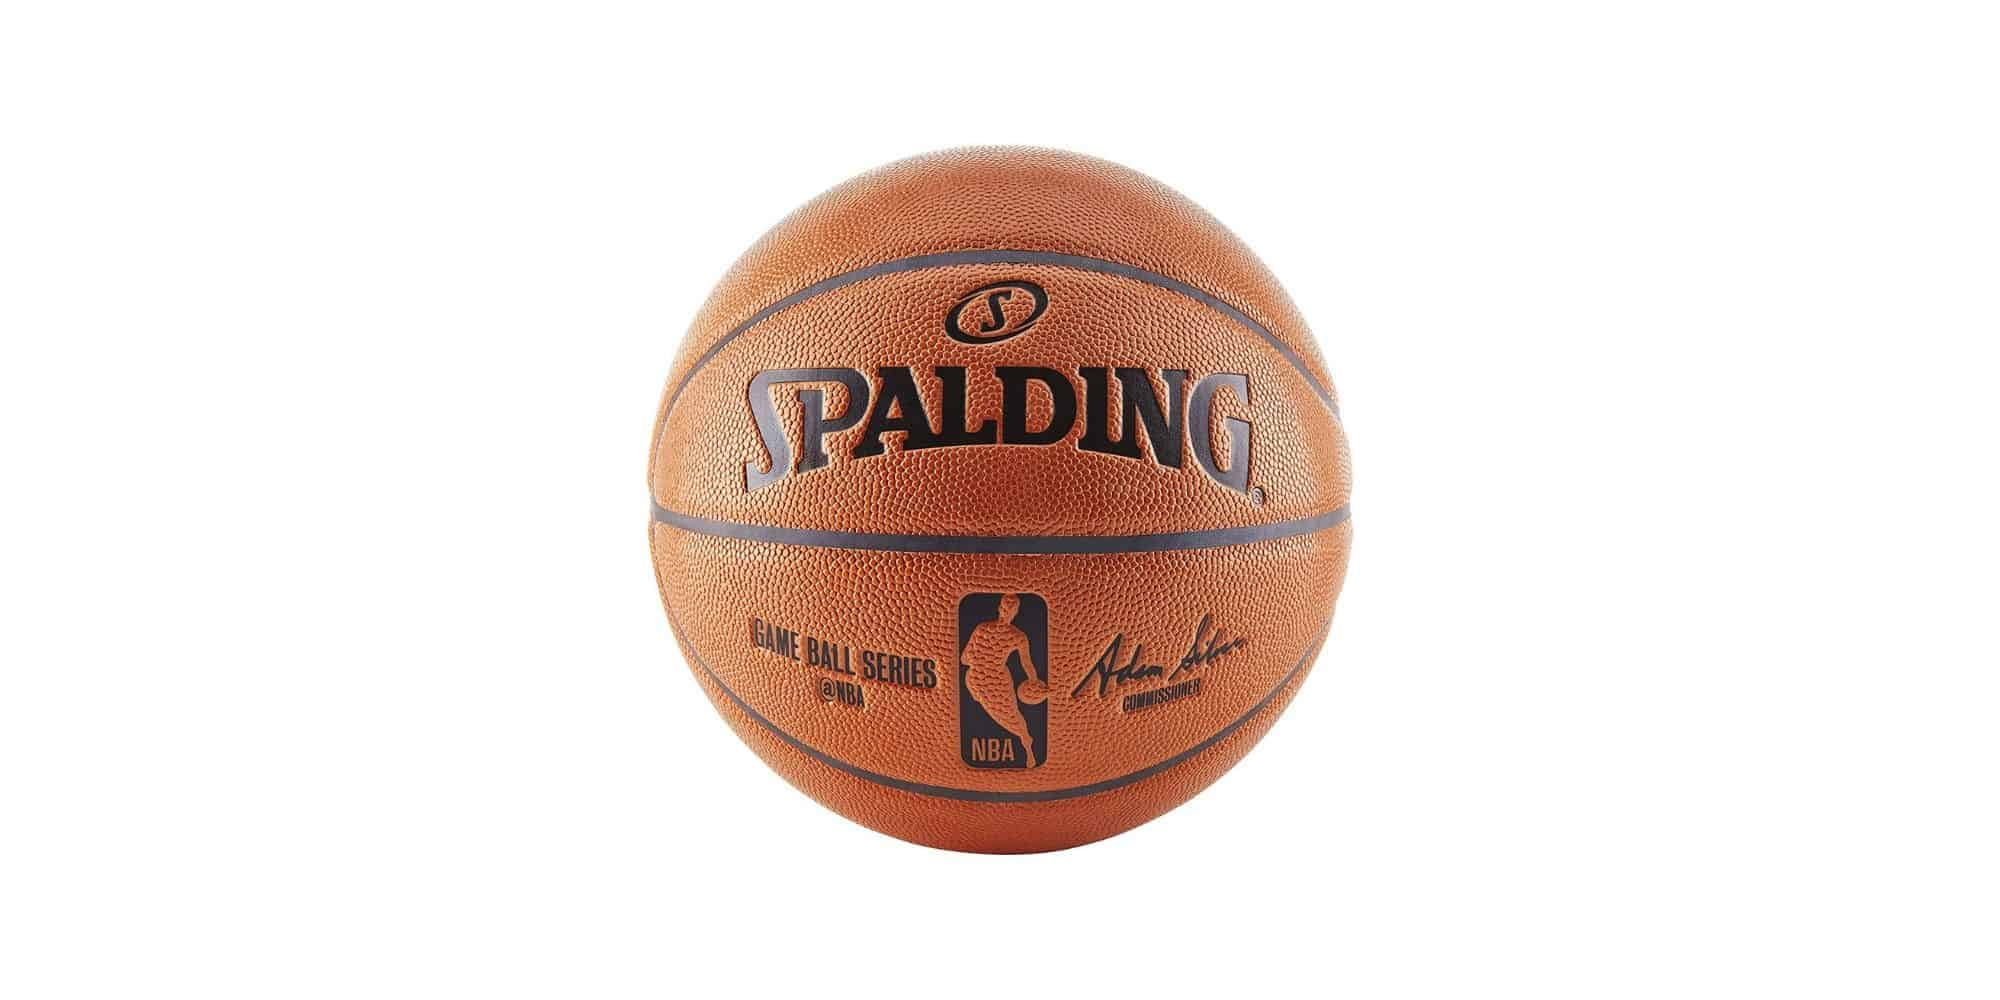 featured image for spalding nba replica basketball review